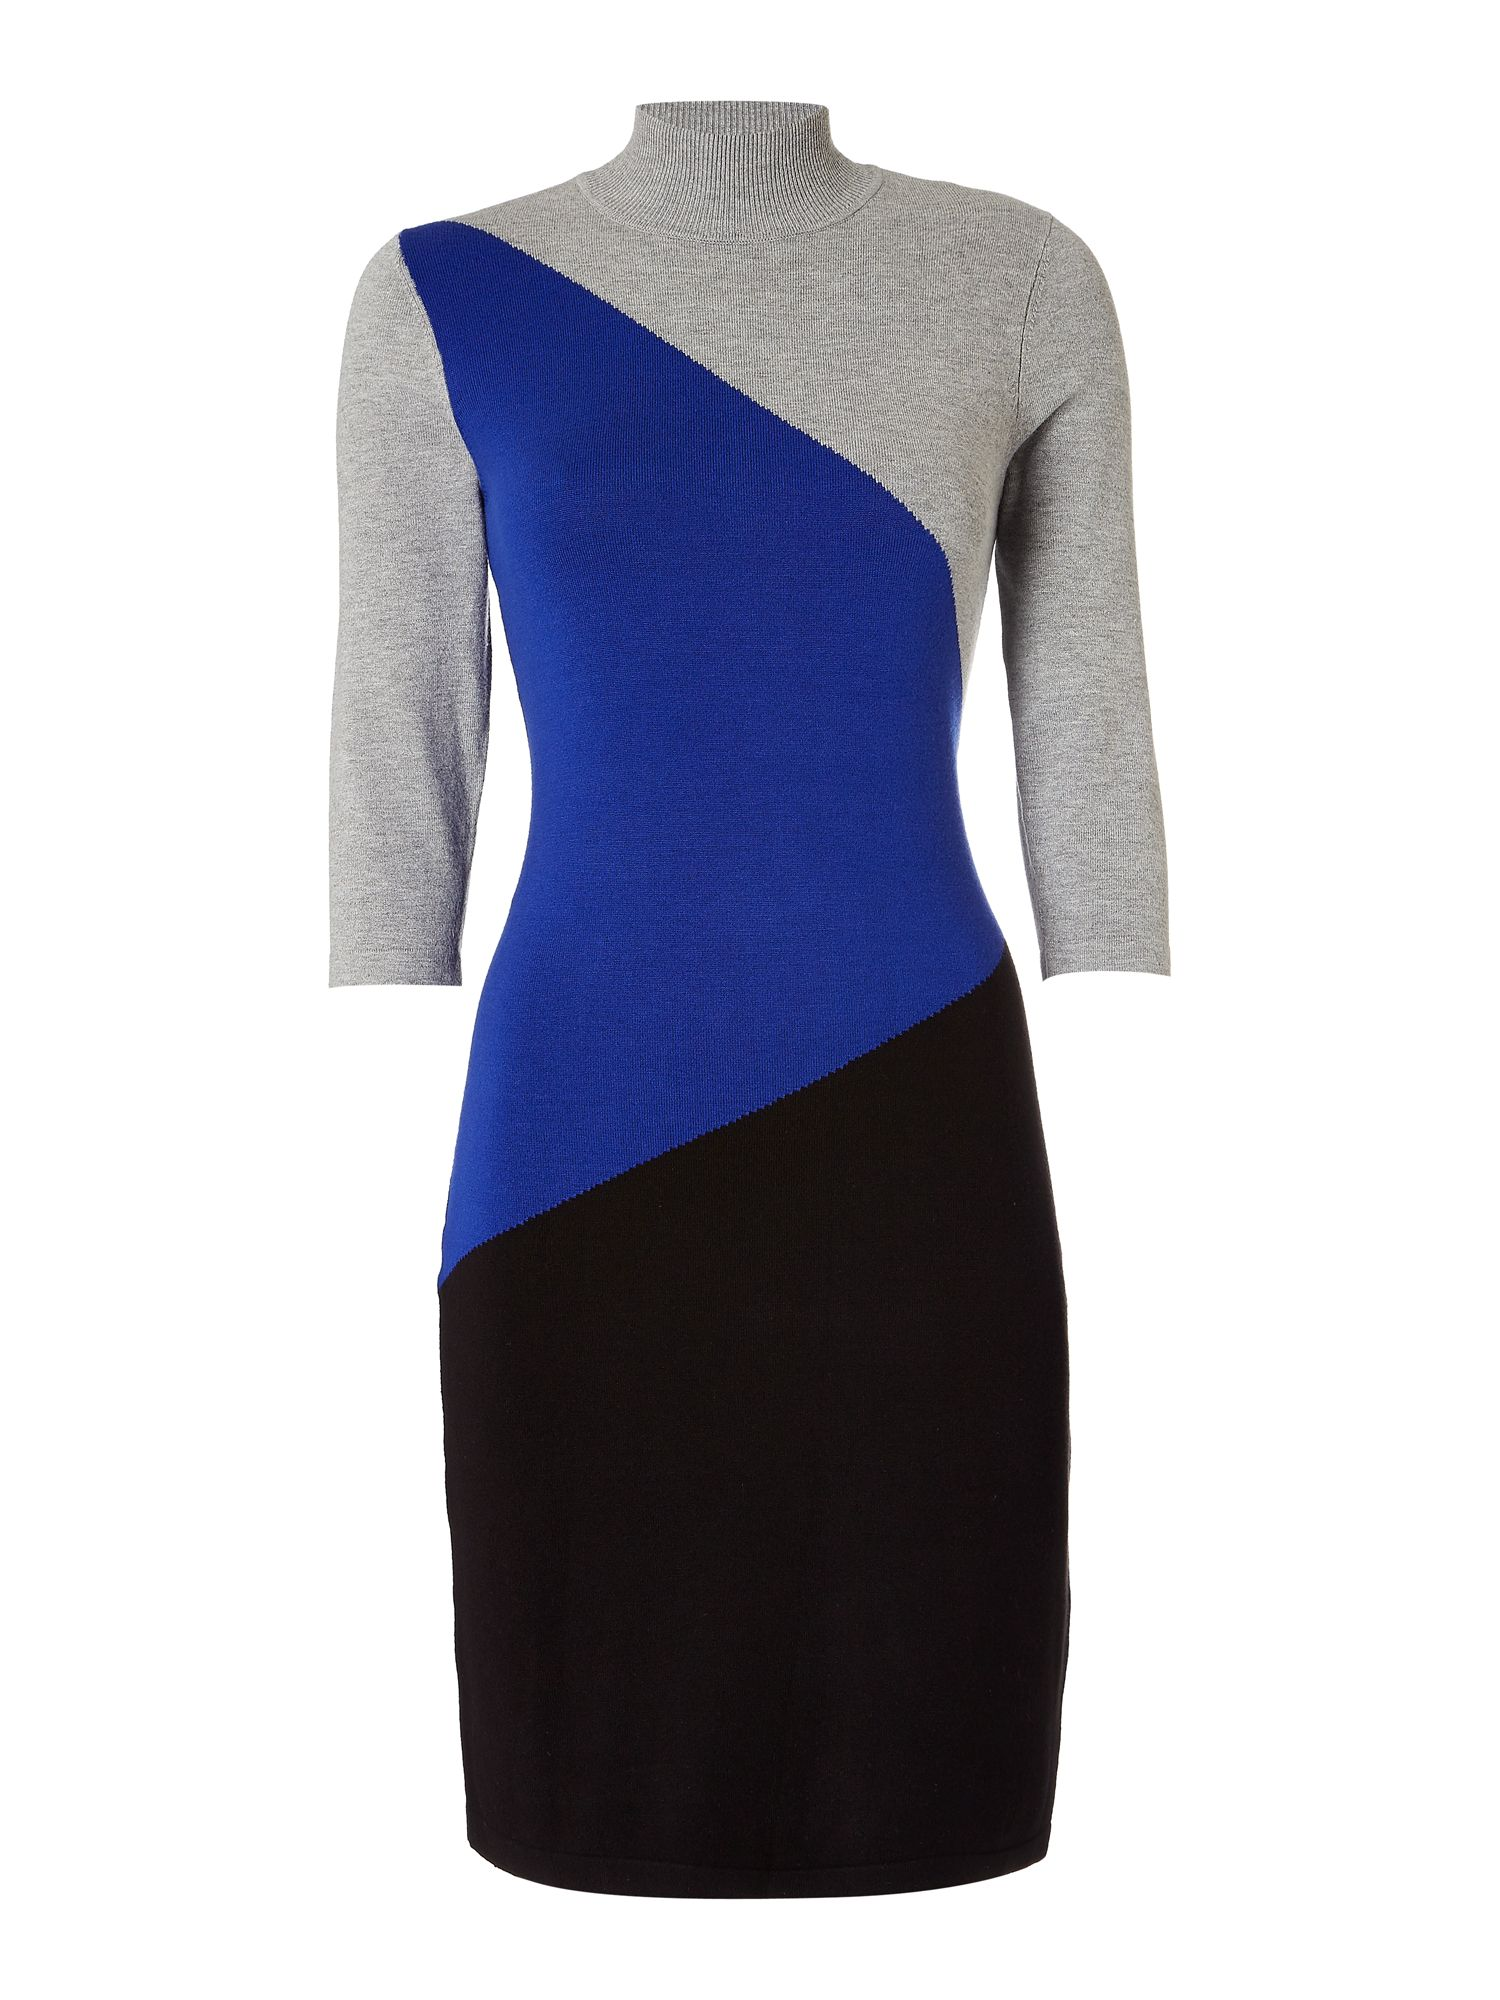 Episode Episode Colourblock Knitted Dress, Grey